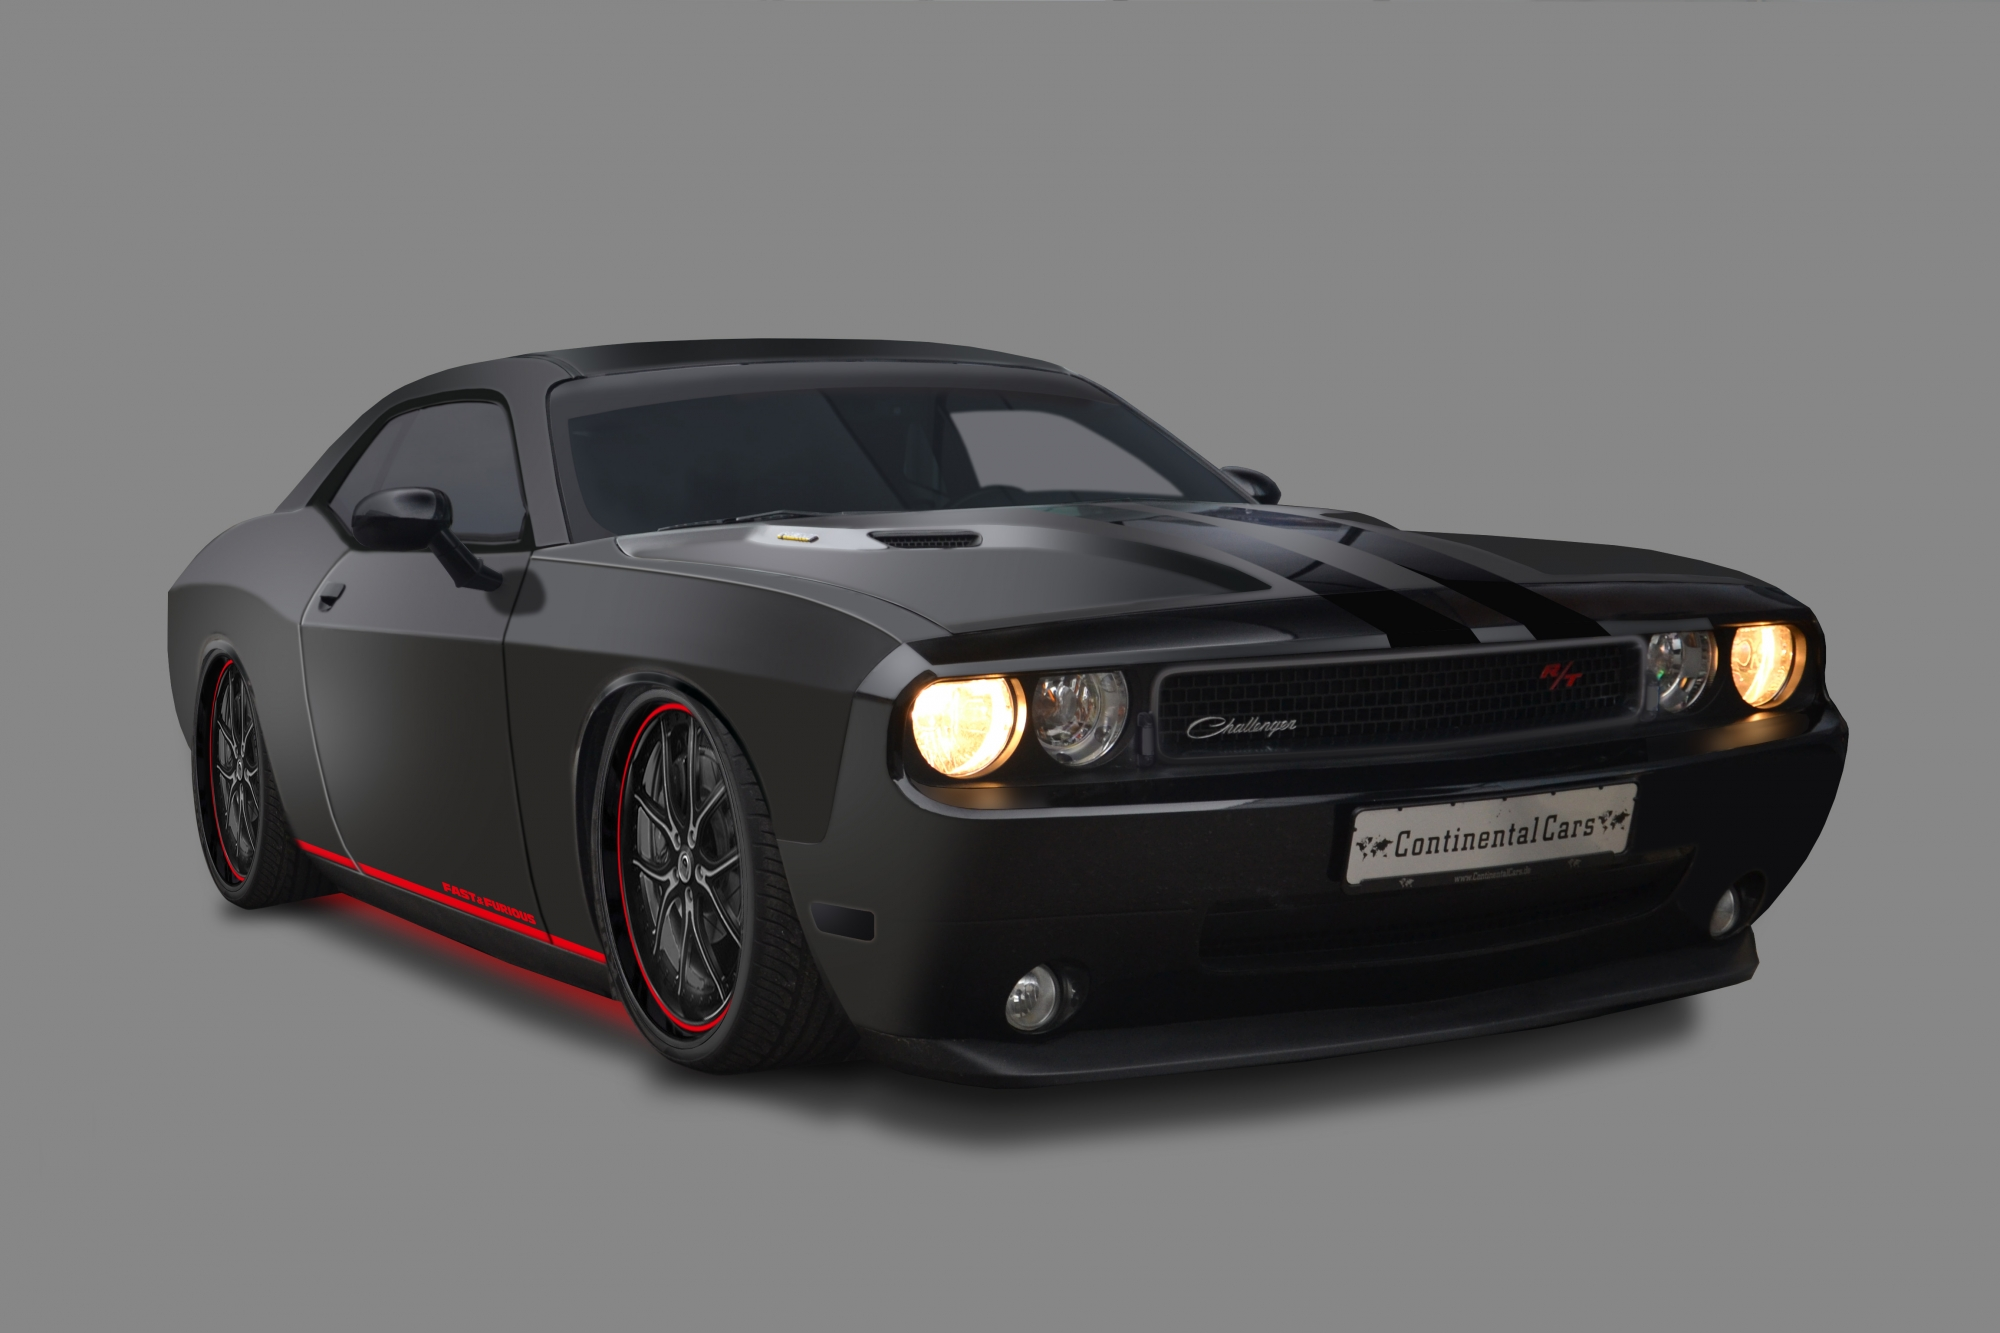 beendet fast furious 8 gewinnt einen dodge challenger. Black Bedroom Furniture Sets. Home Design Ideas